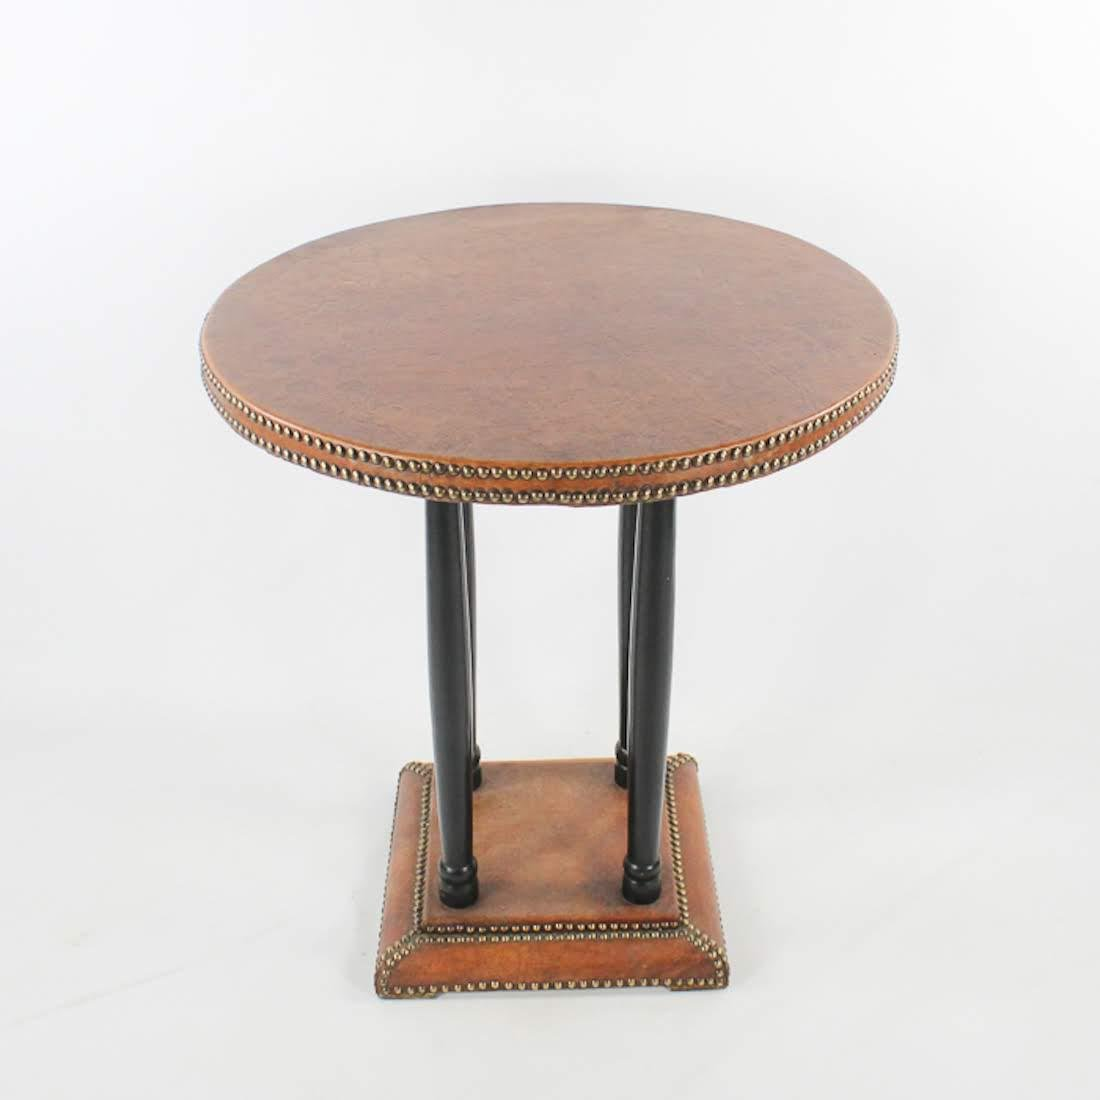 Antique French Leather Round Side Table with Brass Clad